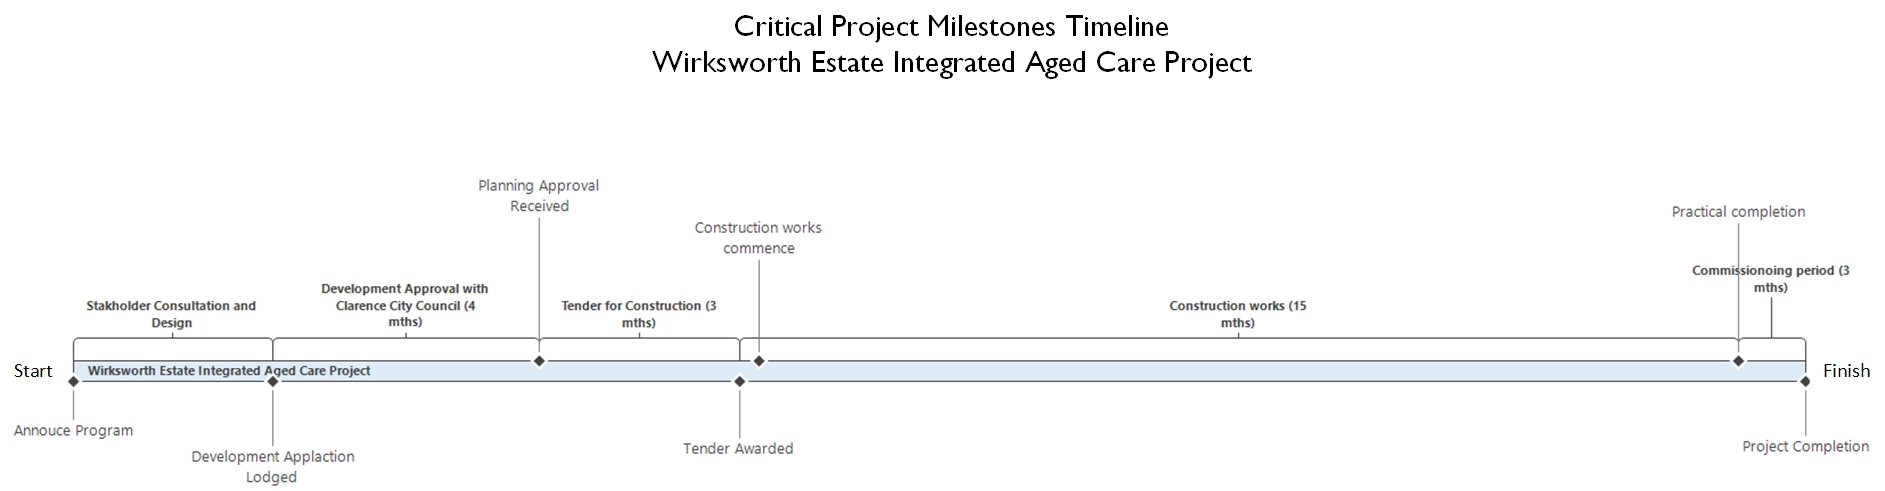 image showing key project milestones - as detailed in the table below.